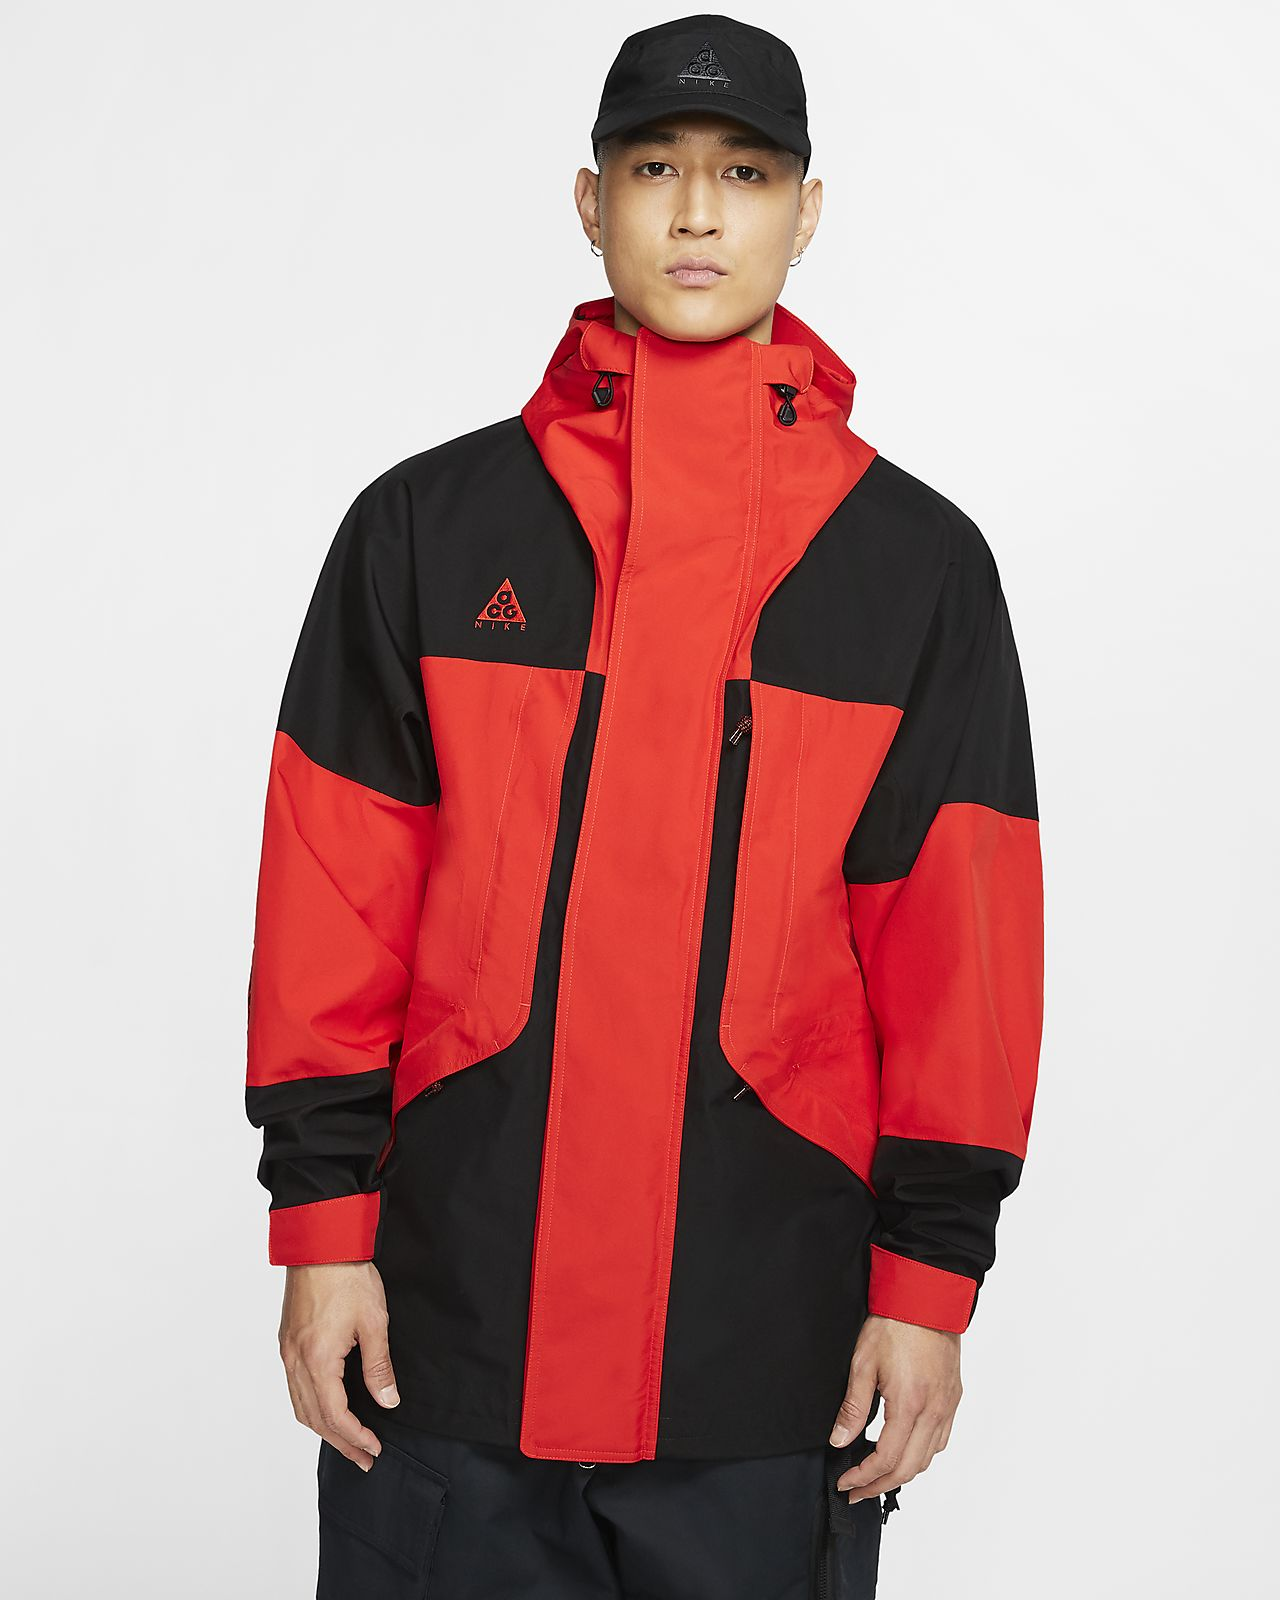 Nike ACG GORE-TEX Men's Jacket